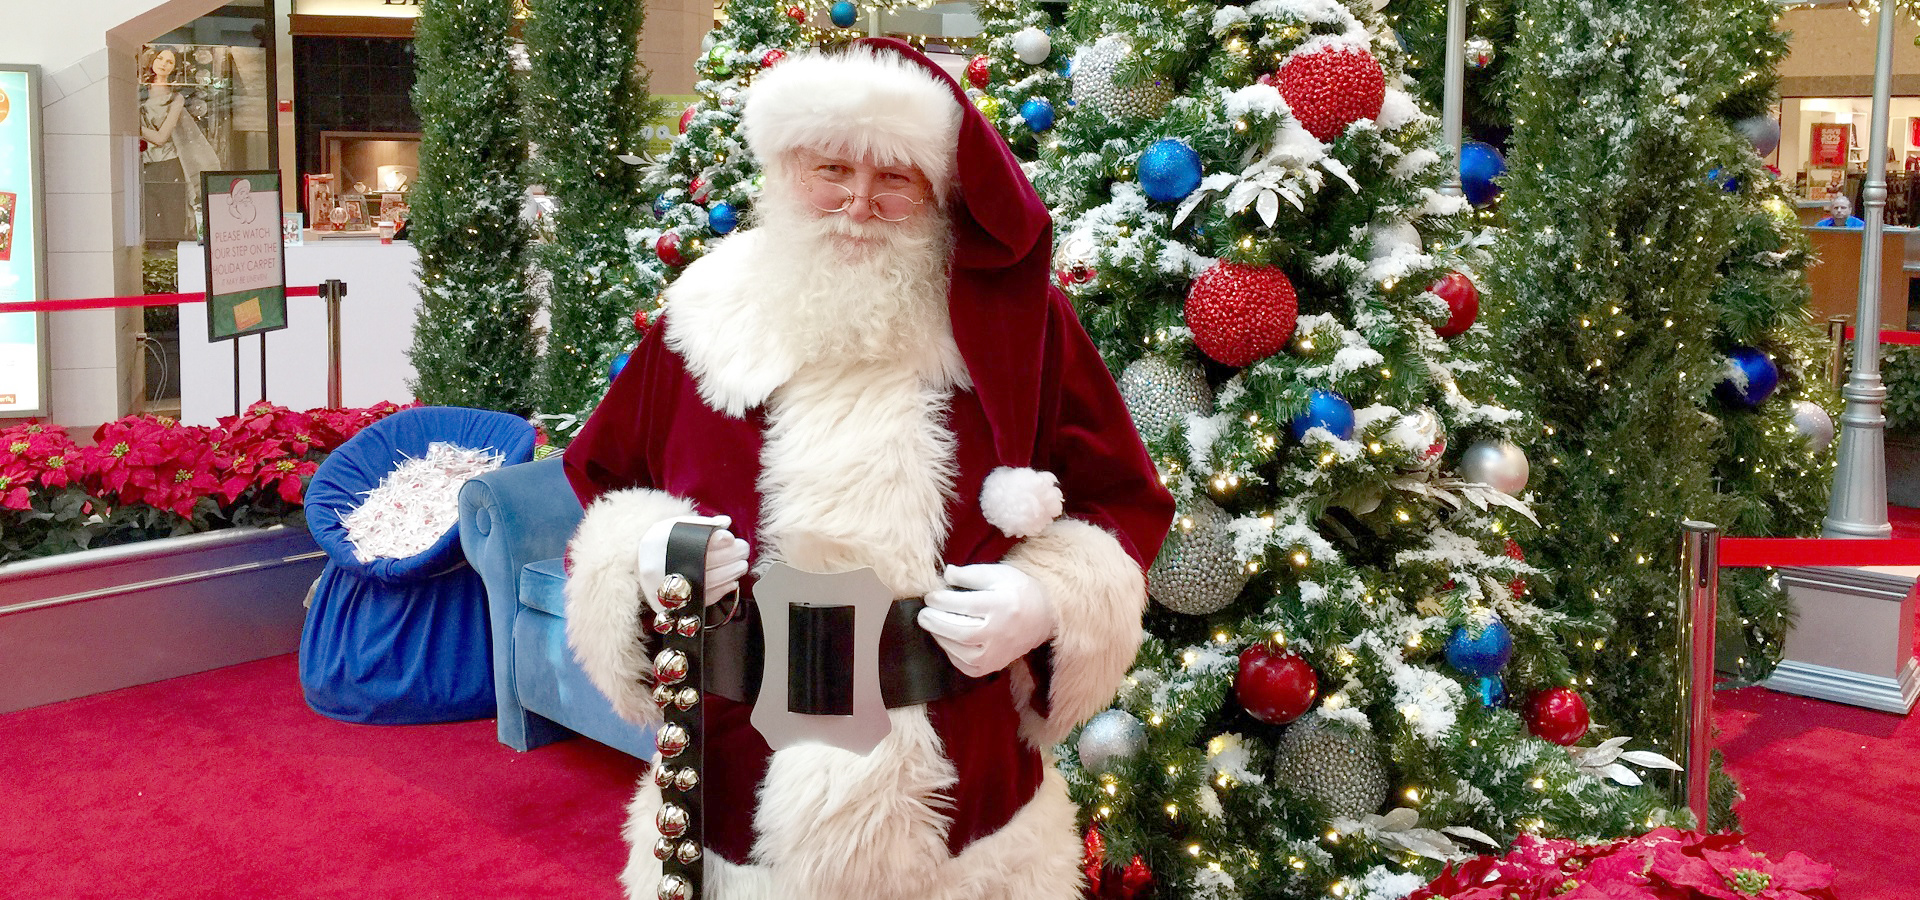 2nd Annual Tree Lighting at Dulles Town Center! | Events | Dulles Town Center | Dulles Virginia & 2nd Annual Tree Lighting at Dulles Town Center! | Events | Dulles ... azcodes.com